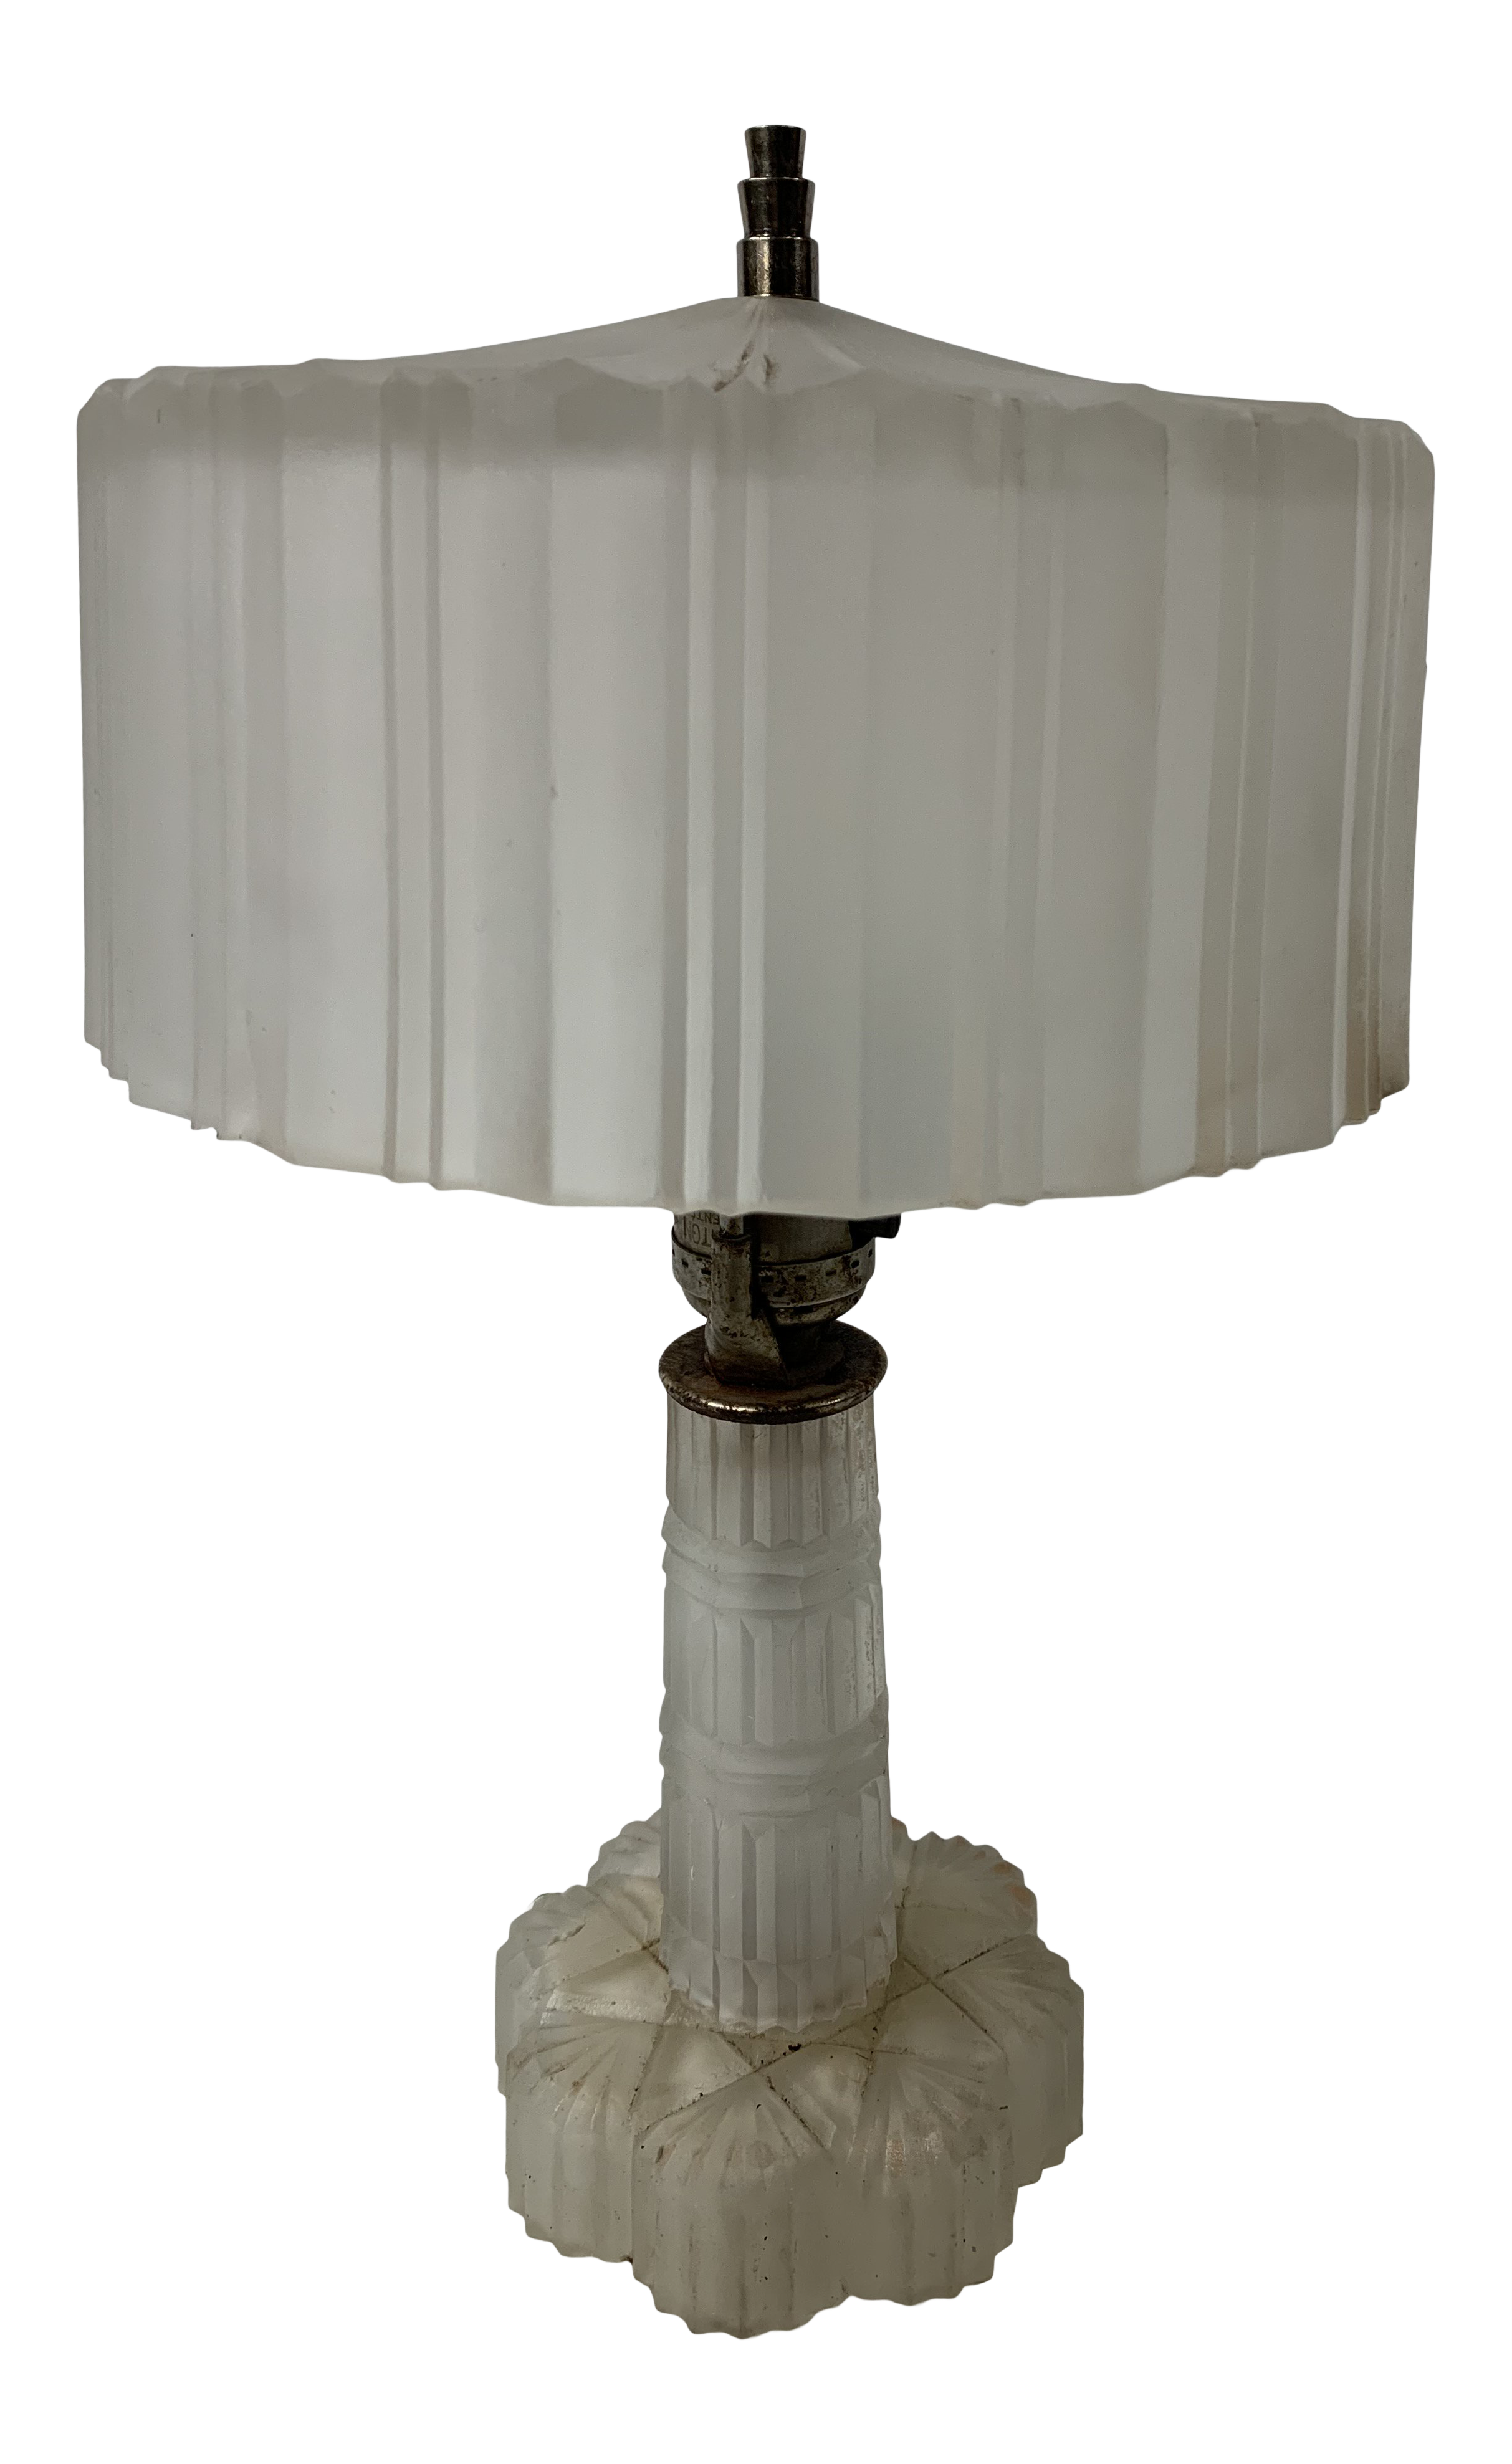 1930s Art Deco Frosted Boudoir Table Lamp On Chairish Com In 2020 Lamp Table Lamp Table Lamp Lighting